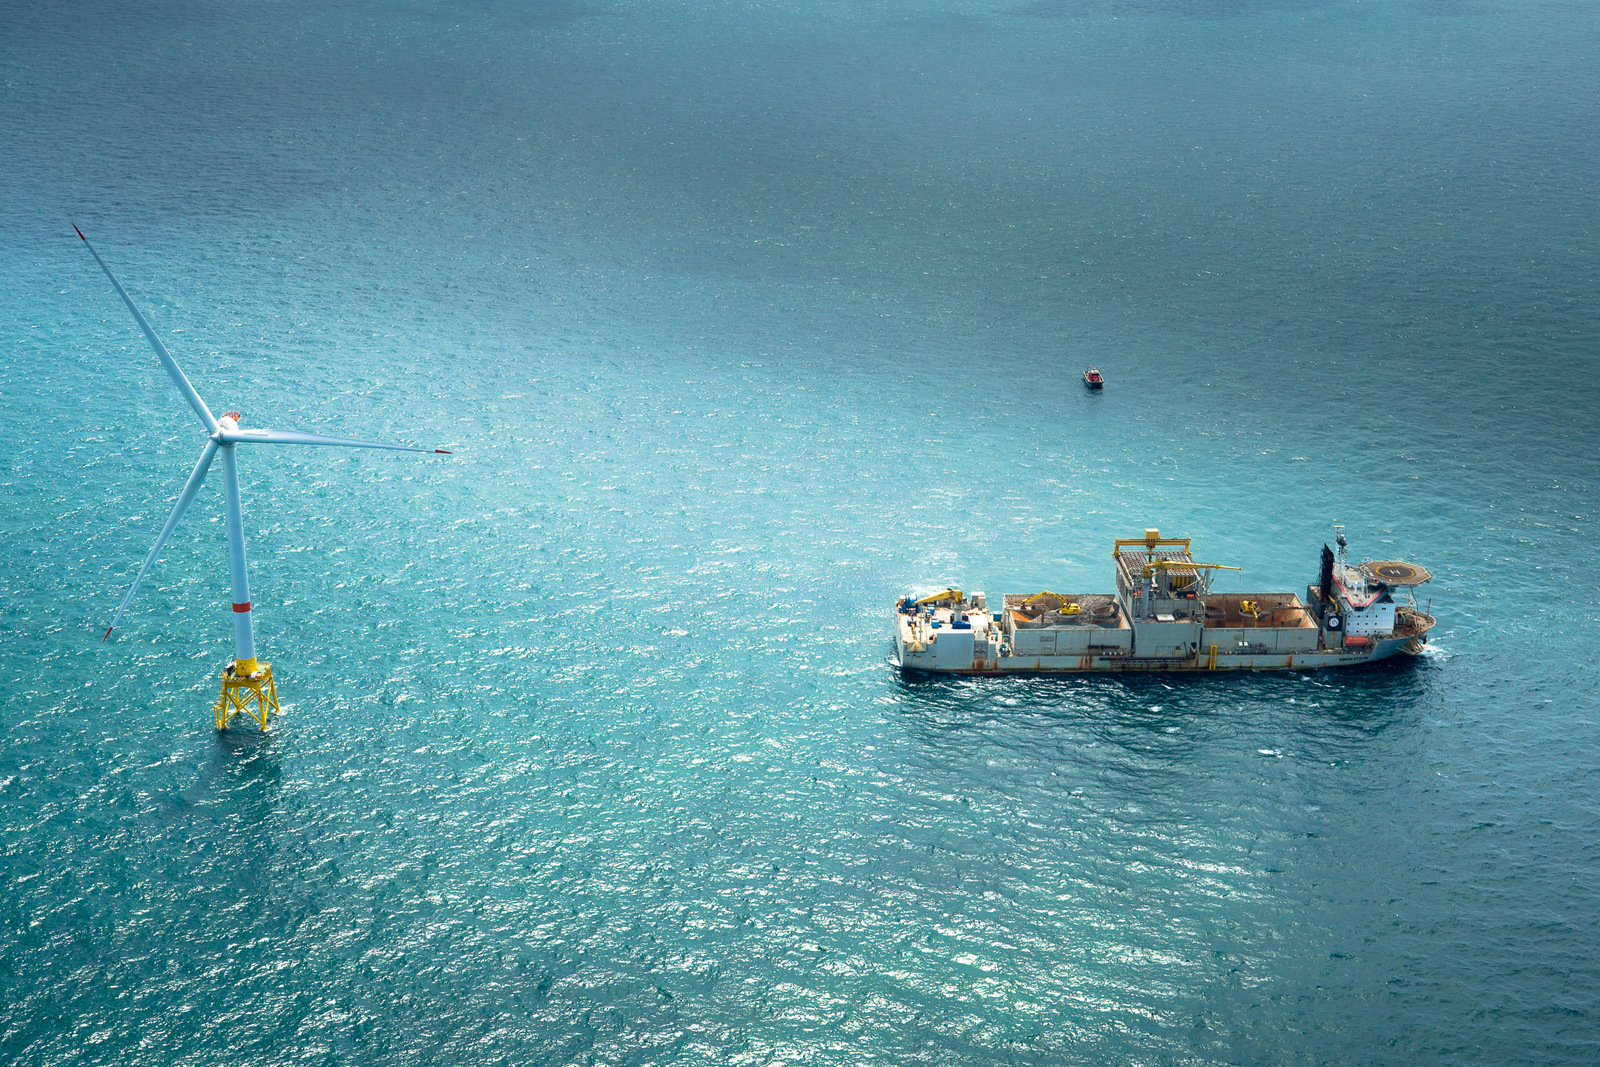 Cable laying ship from Jan de Nul